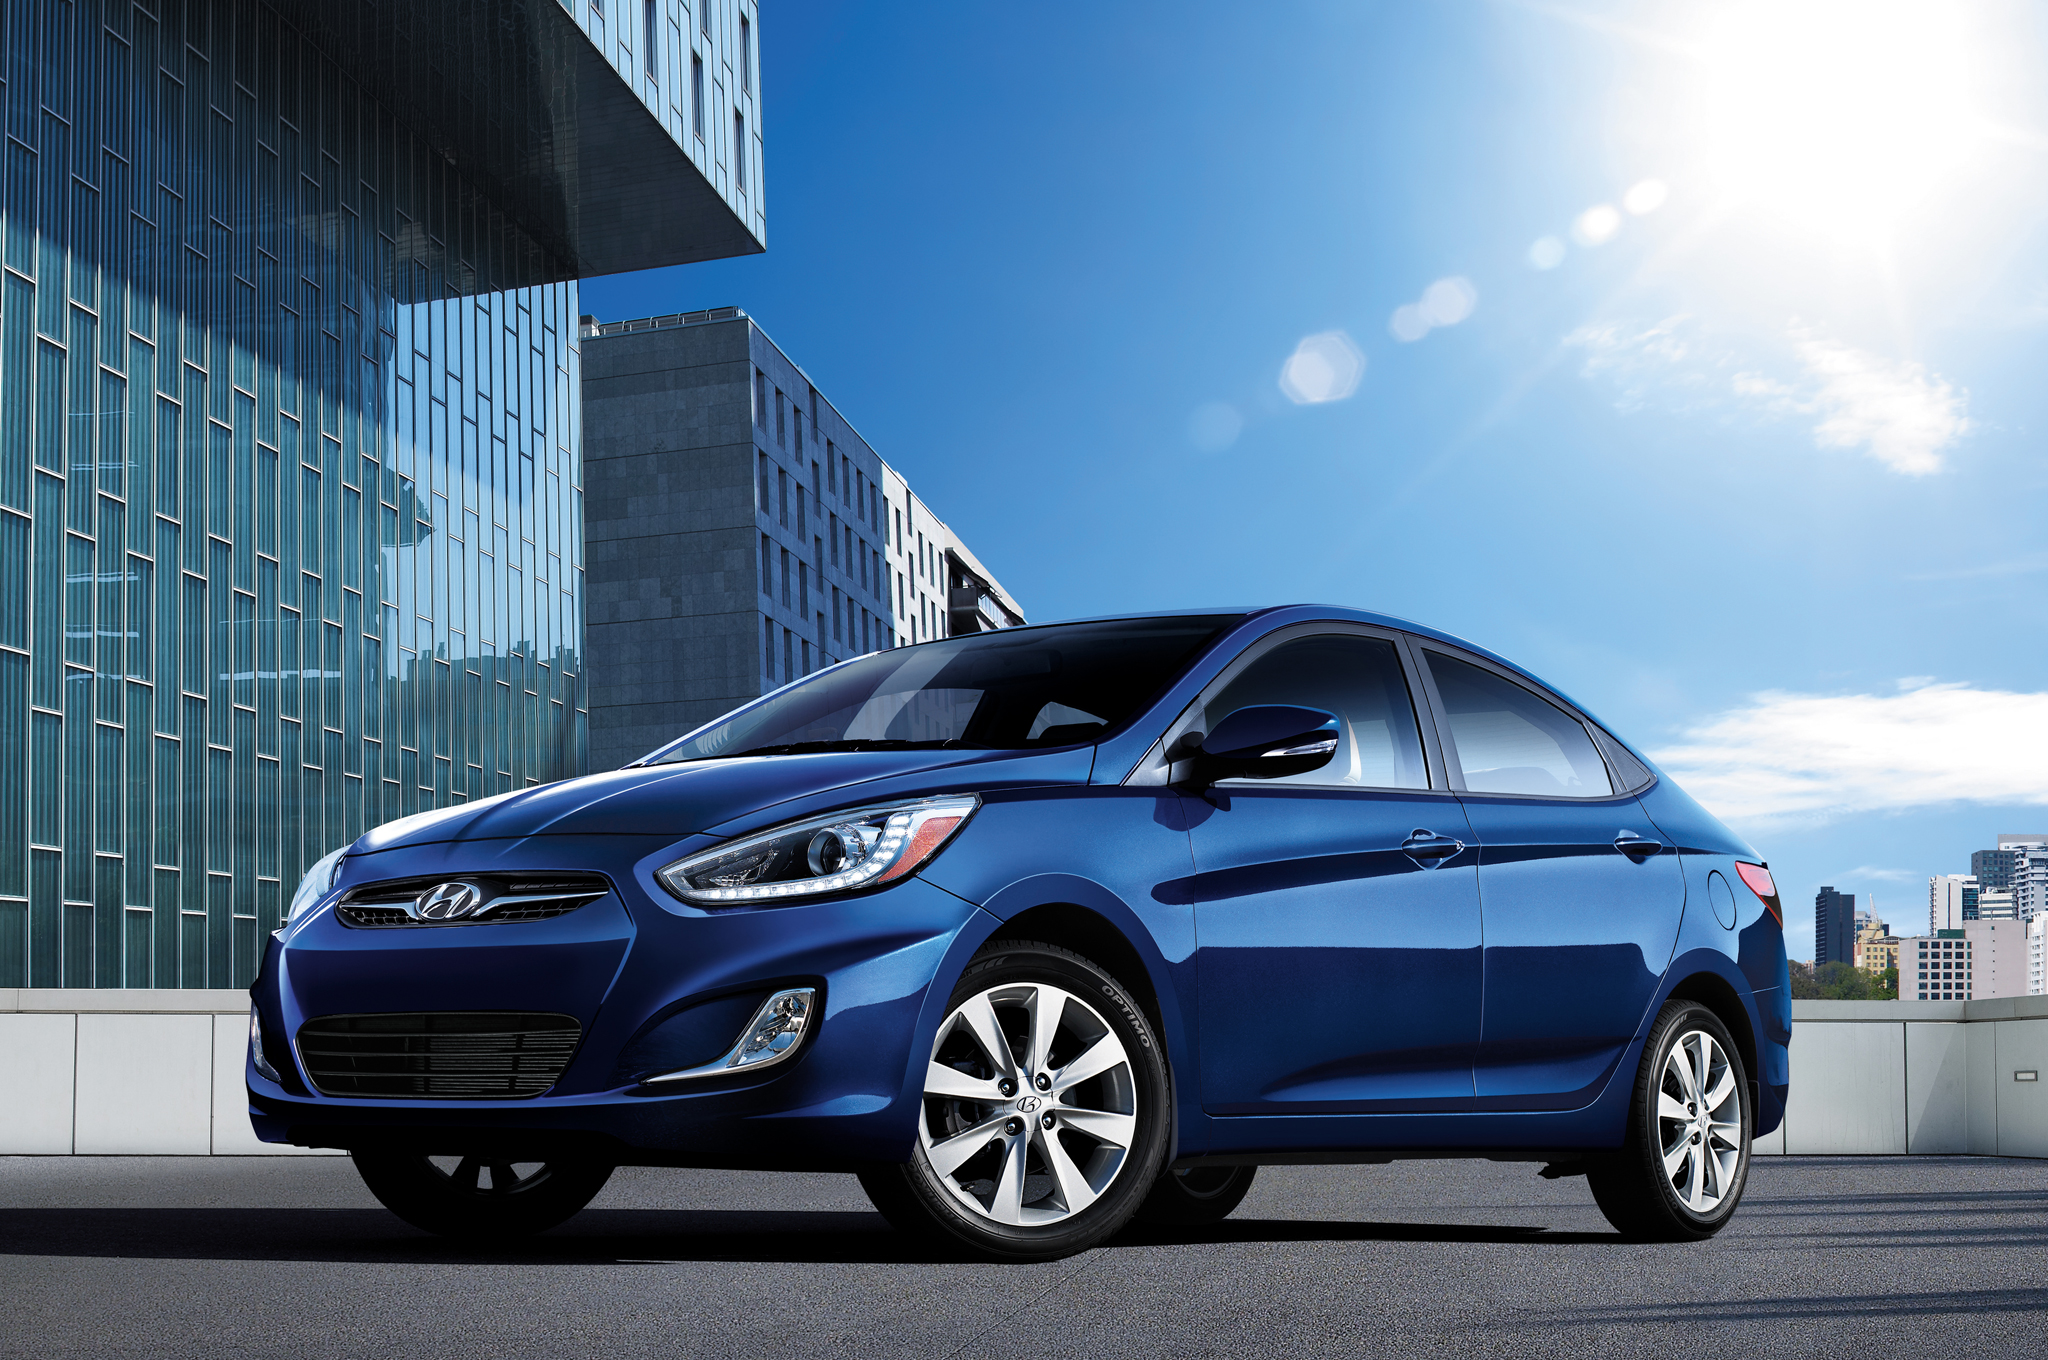 2014 Hyundai Accent Gets Detail Changes Motortrend